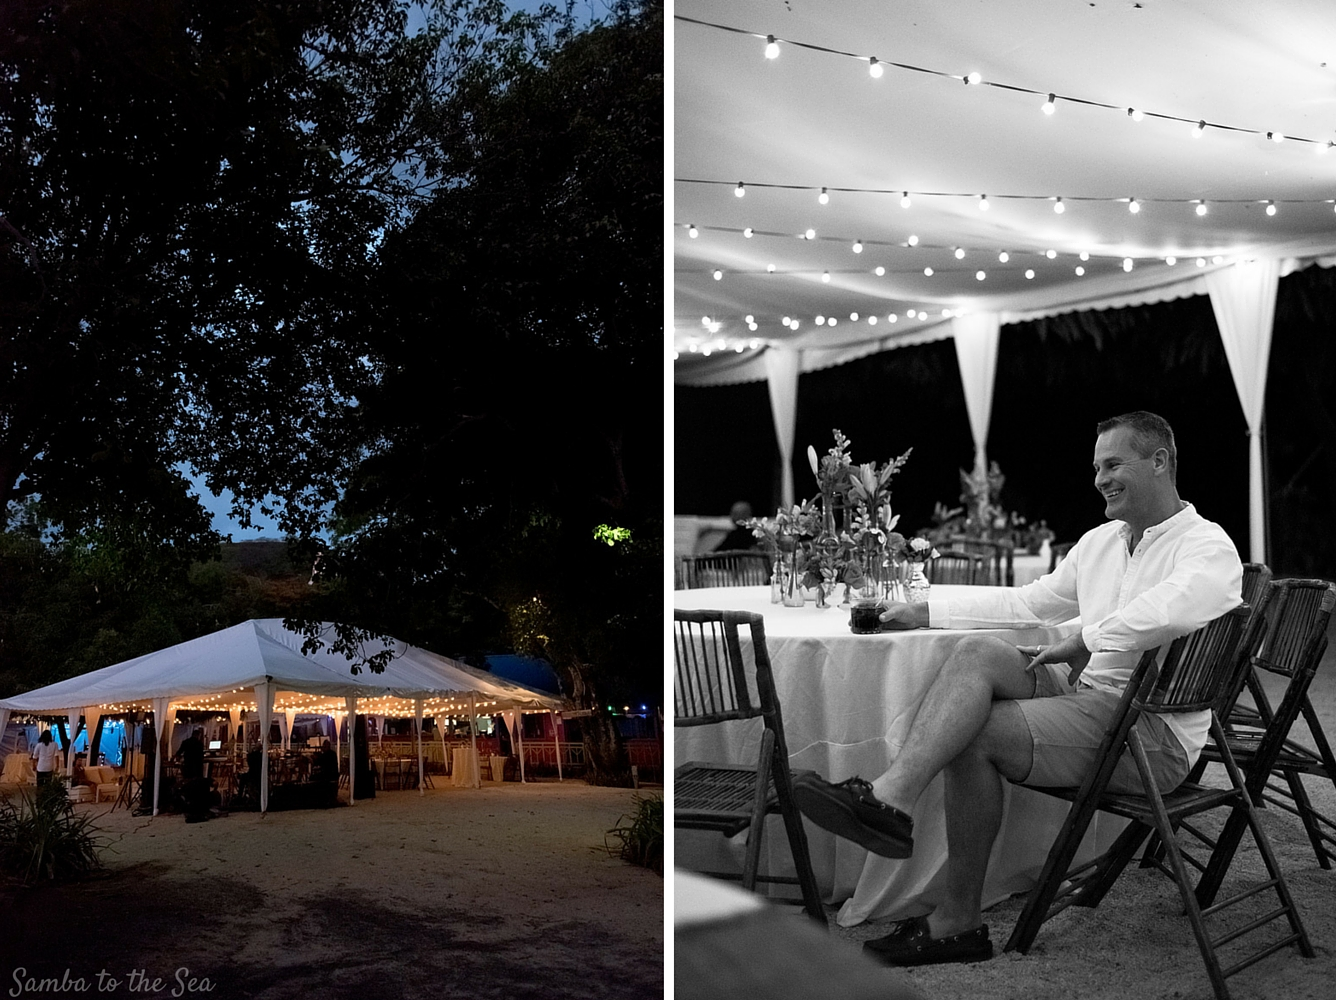 Event at Father Rooster in Costa Rica. Photographed by Kristen M. Brown, Samba to the Sea Photography.